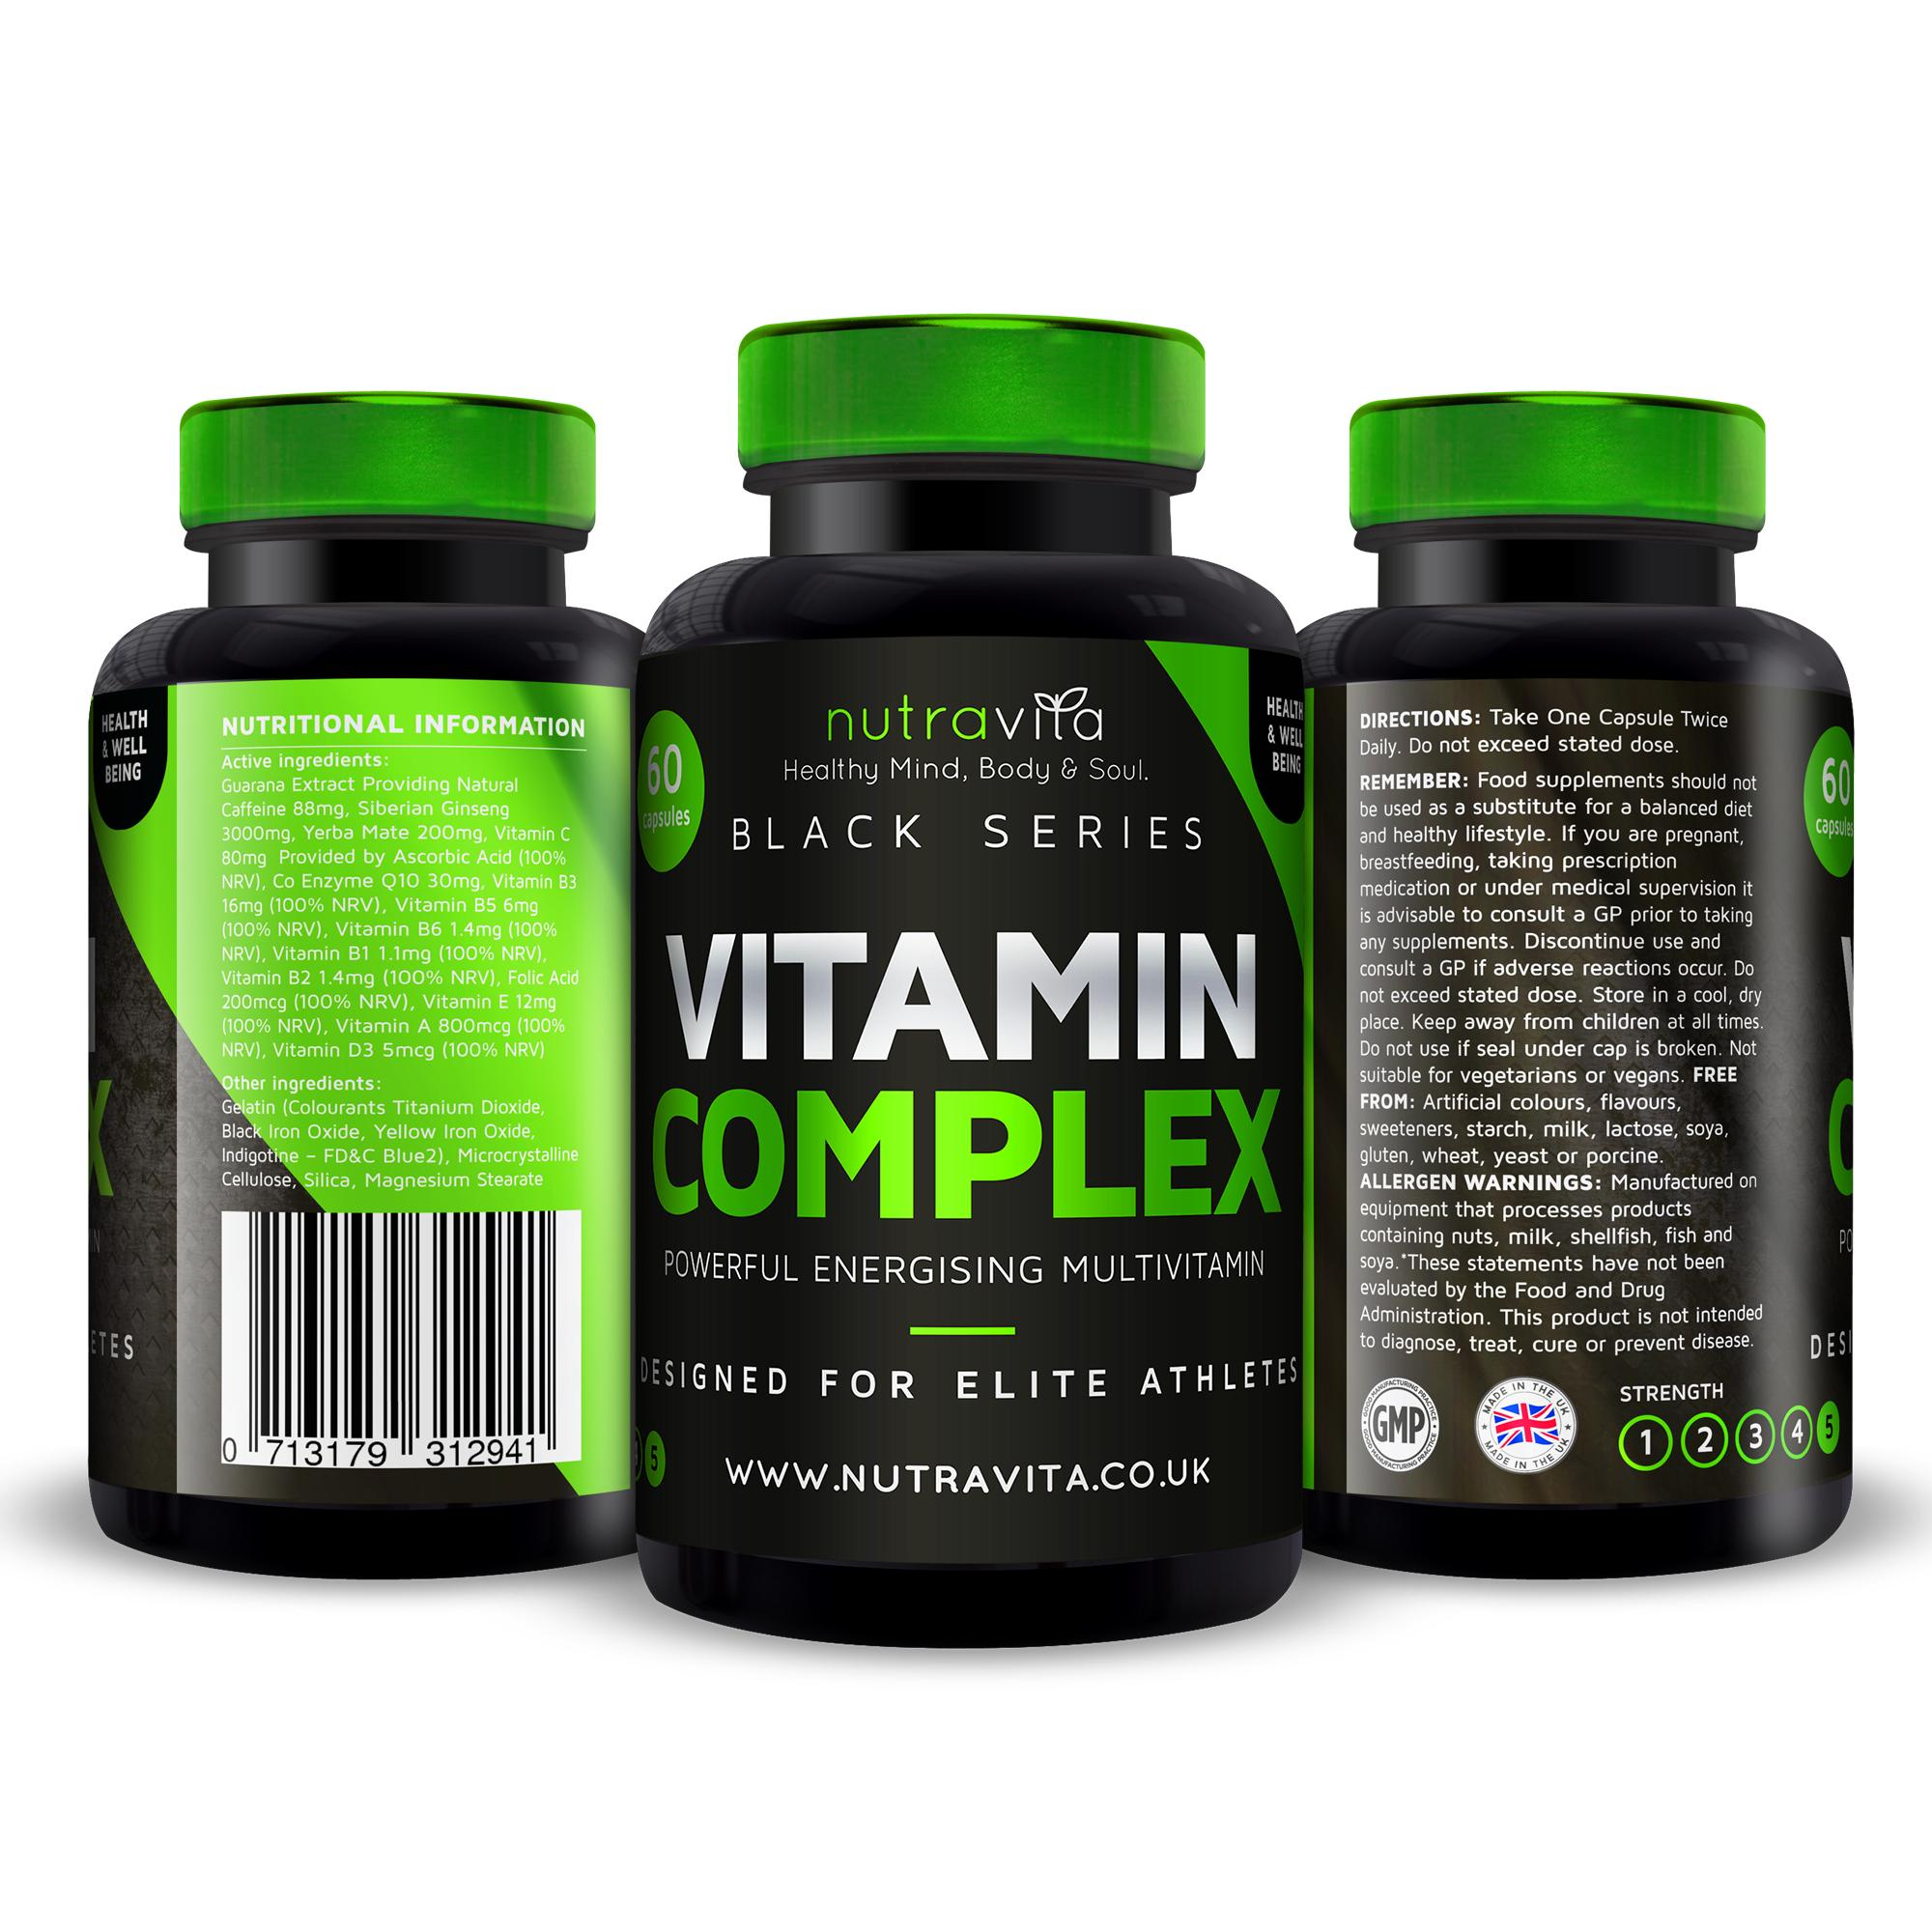 Multivitamins for athletes